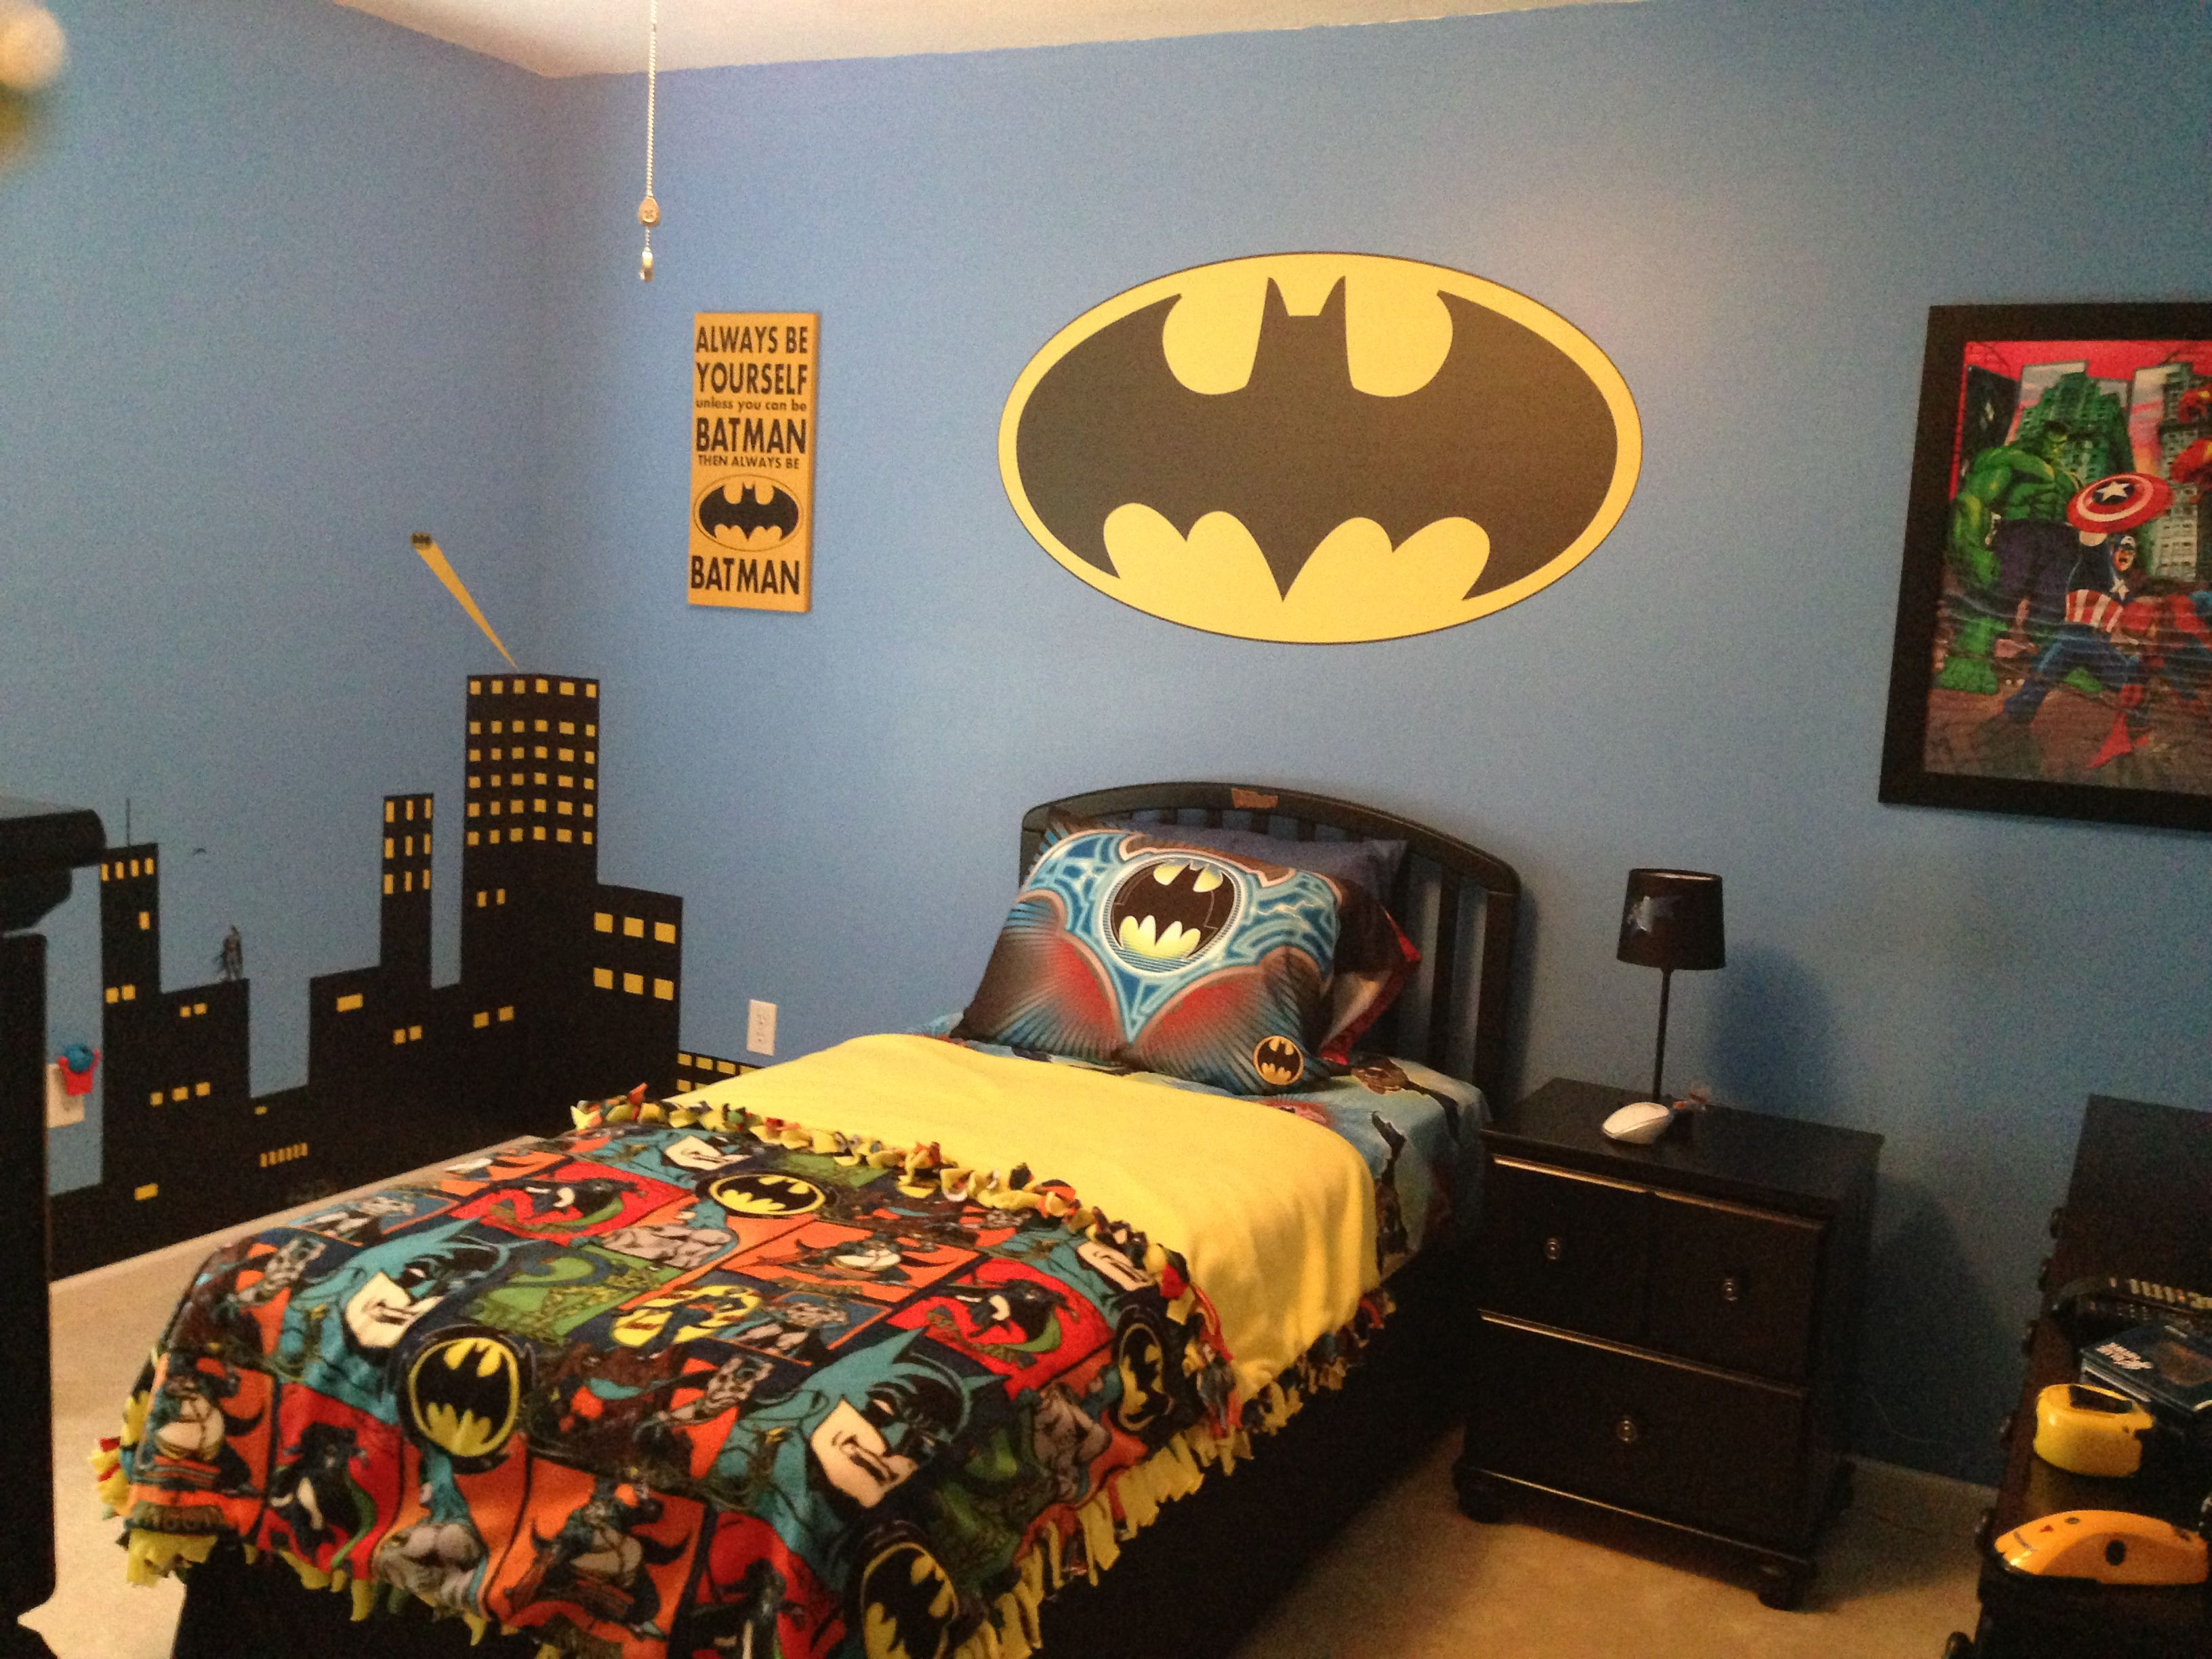 Superhero bedroom - Find This Pin And More On Super Hero Room Ideas